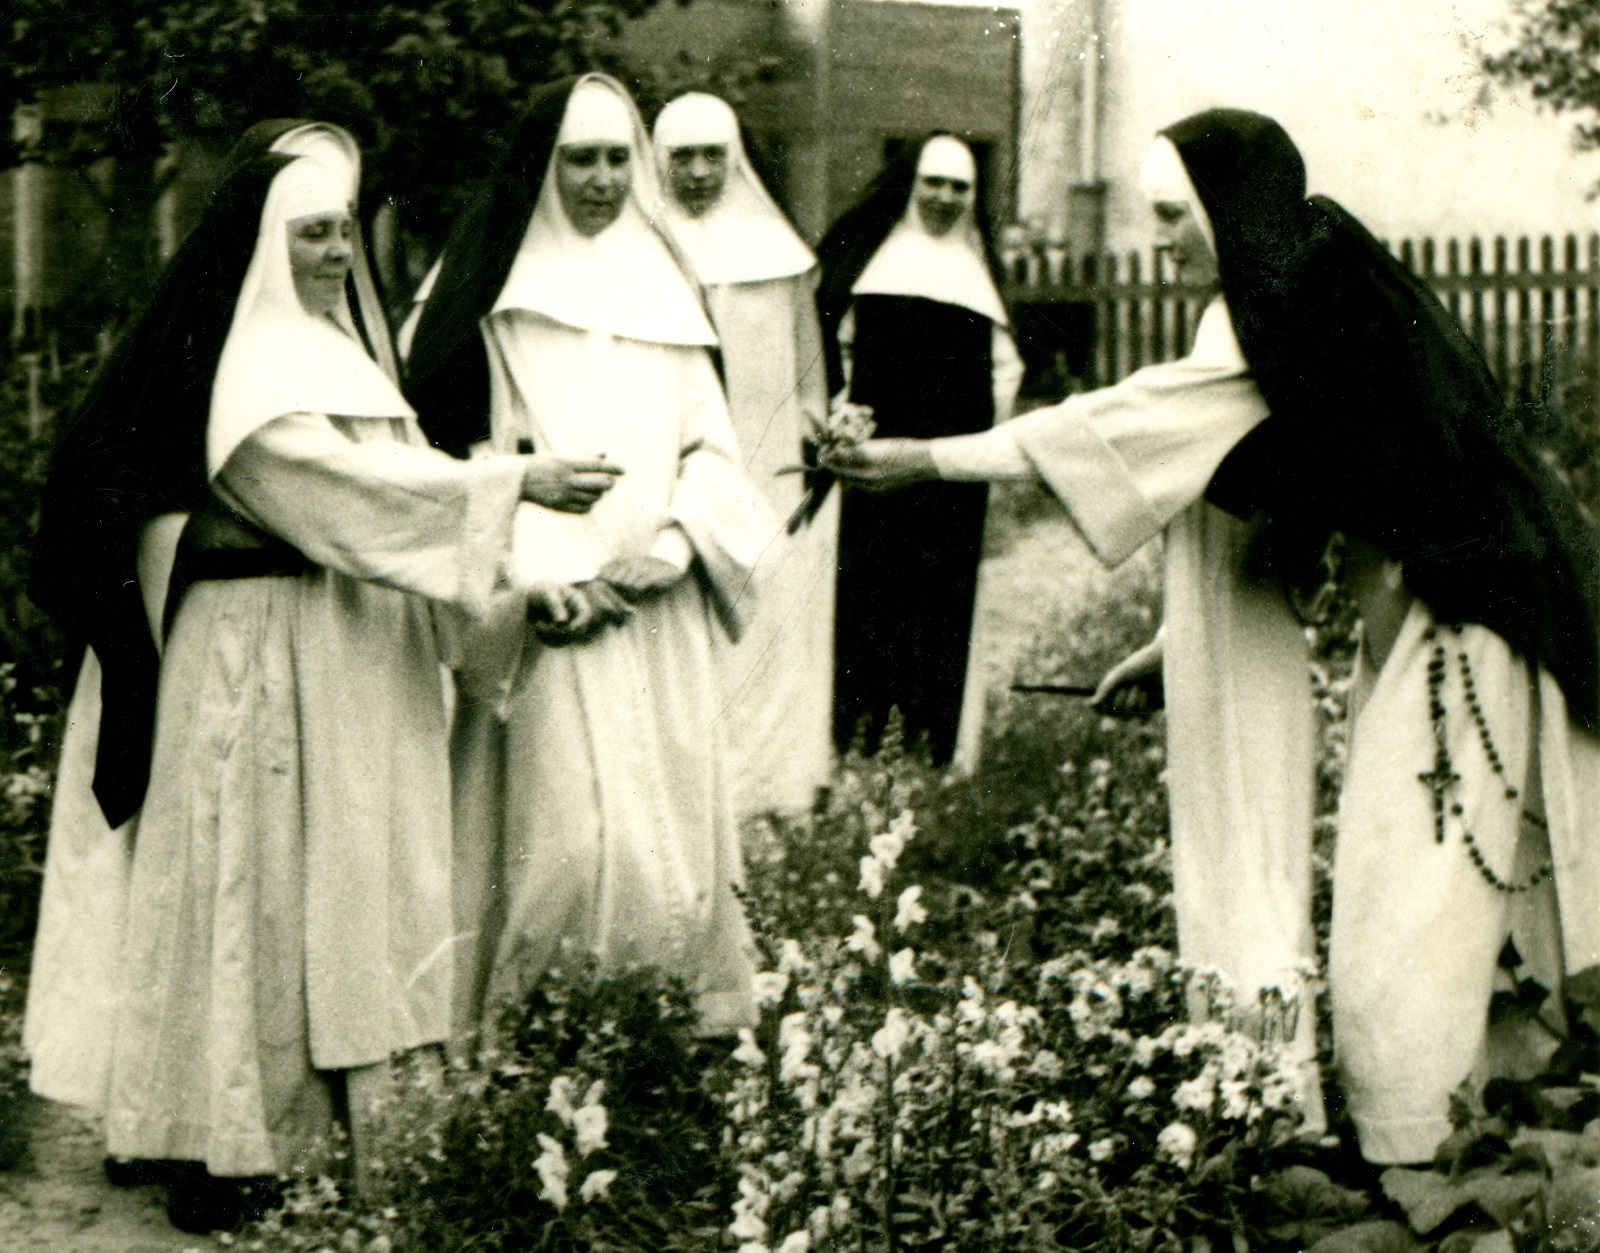 Blessed Julia with her Sisters in the garden.